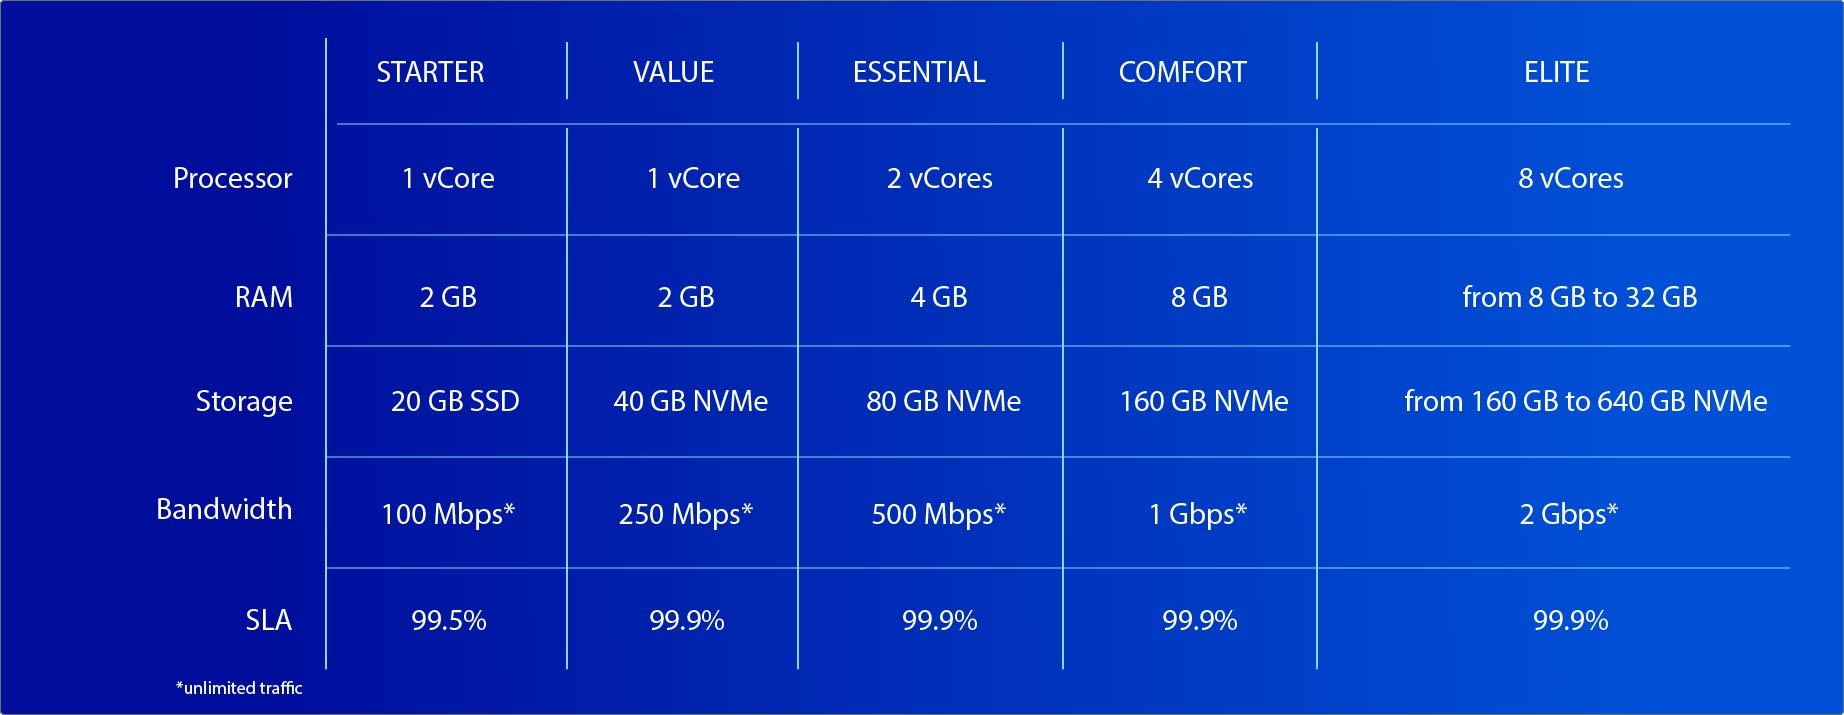 comparative table of the new VPS range